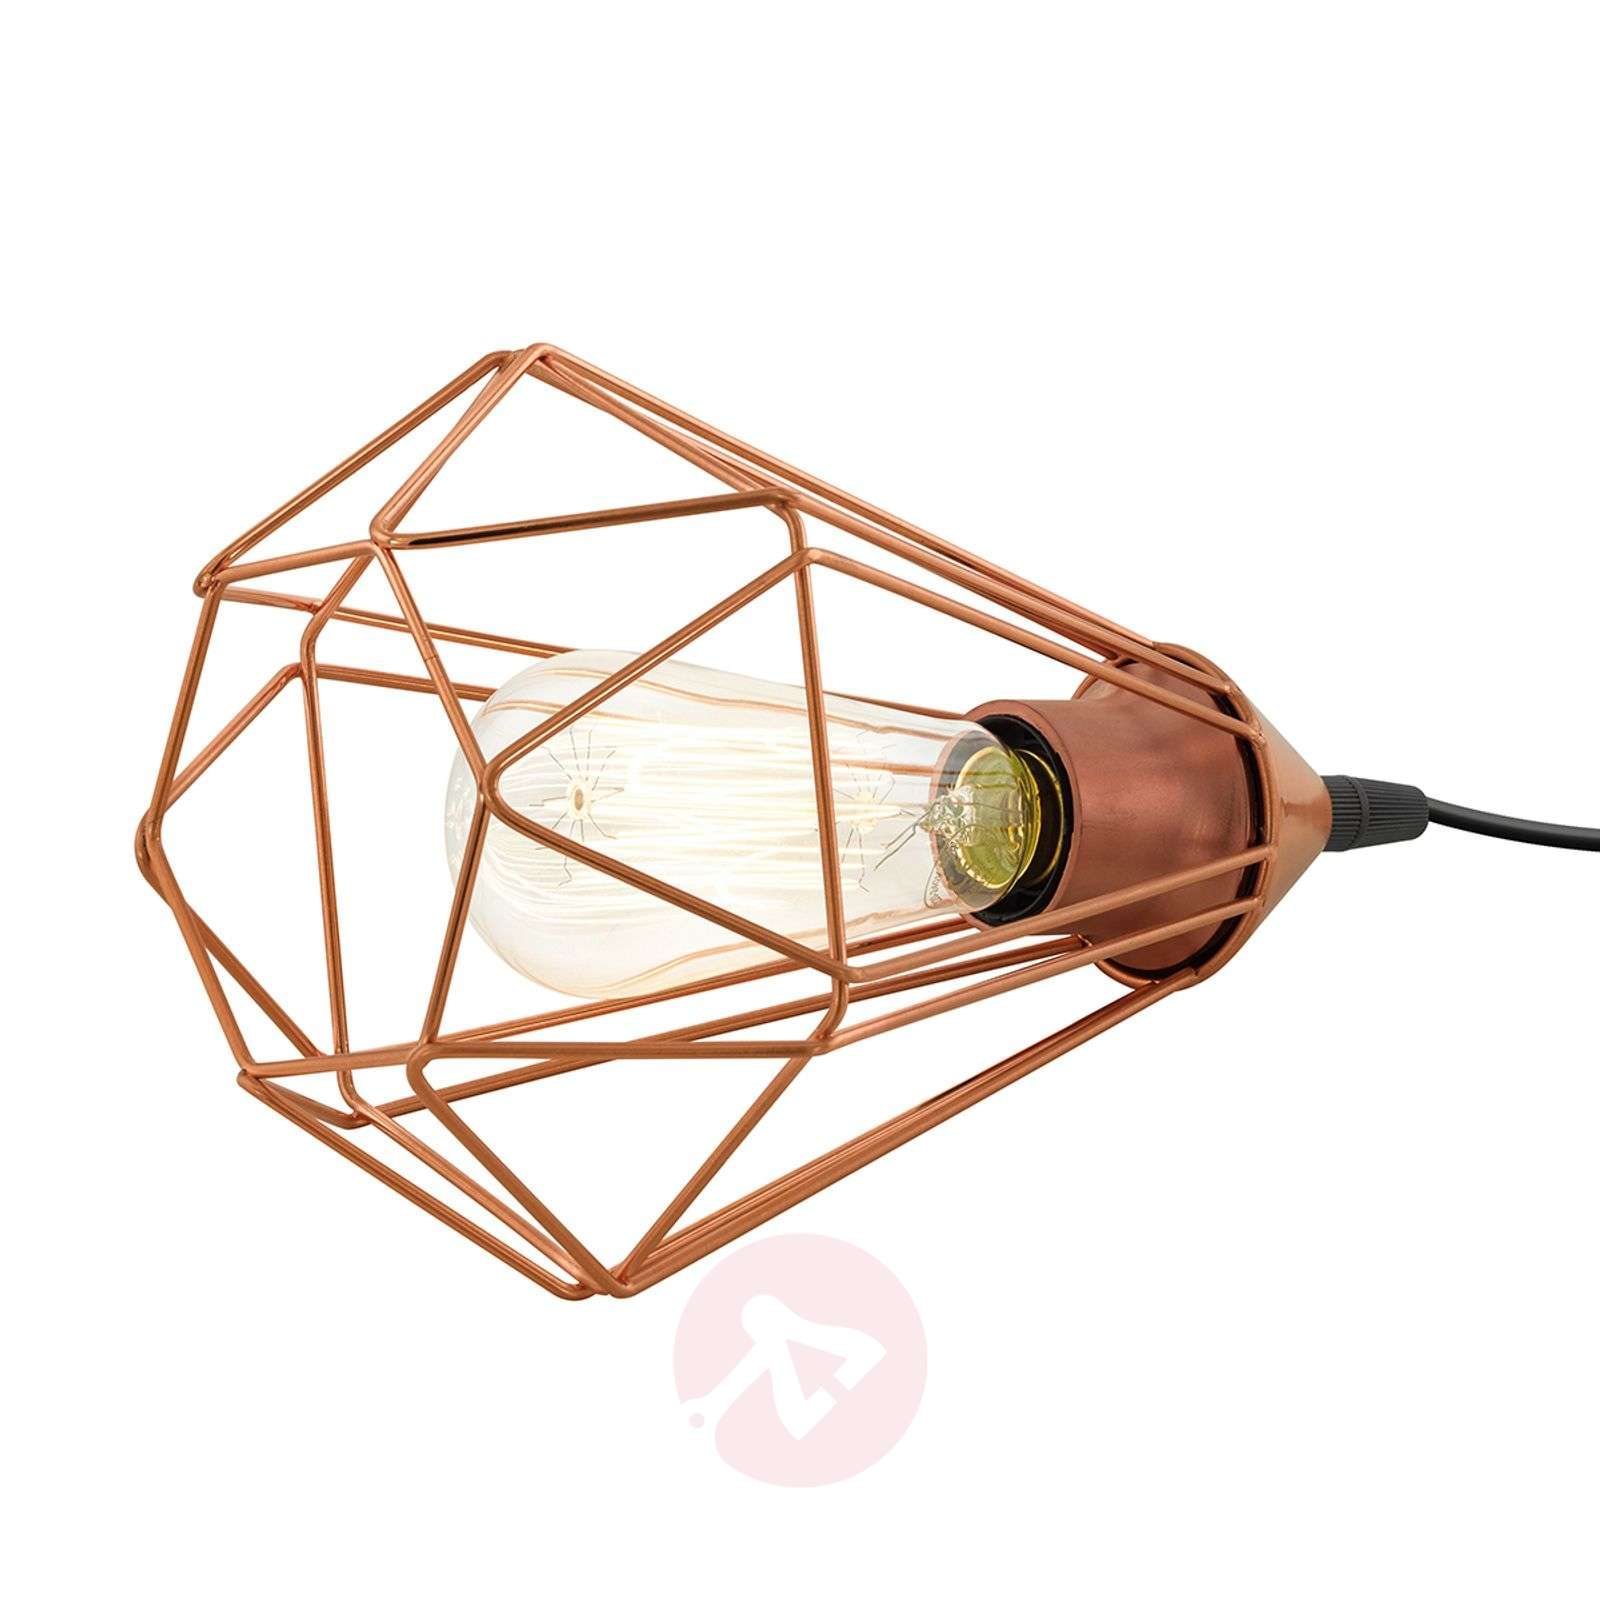 Vintage table lamp Tarbes with copper finish-3031865-01